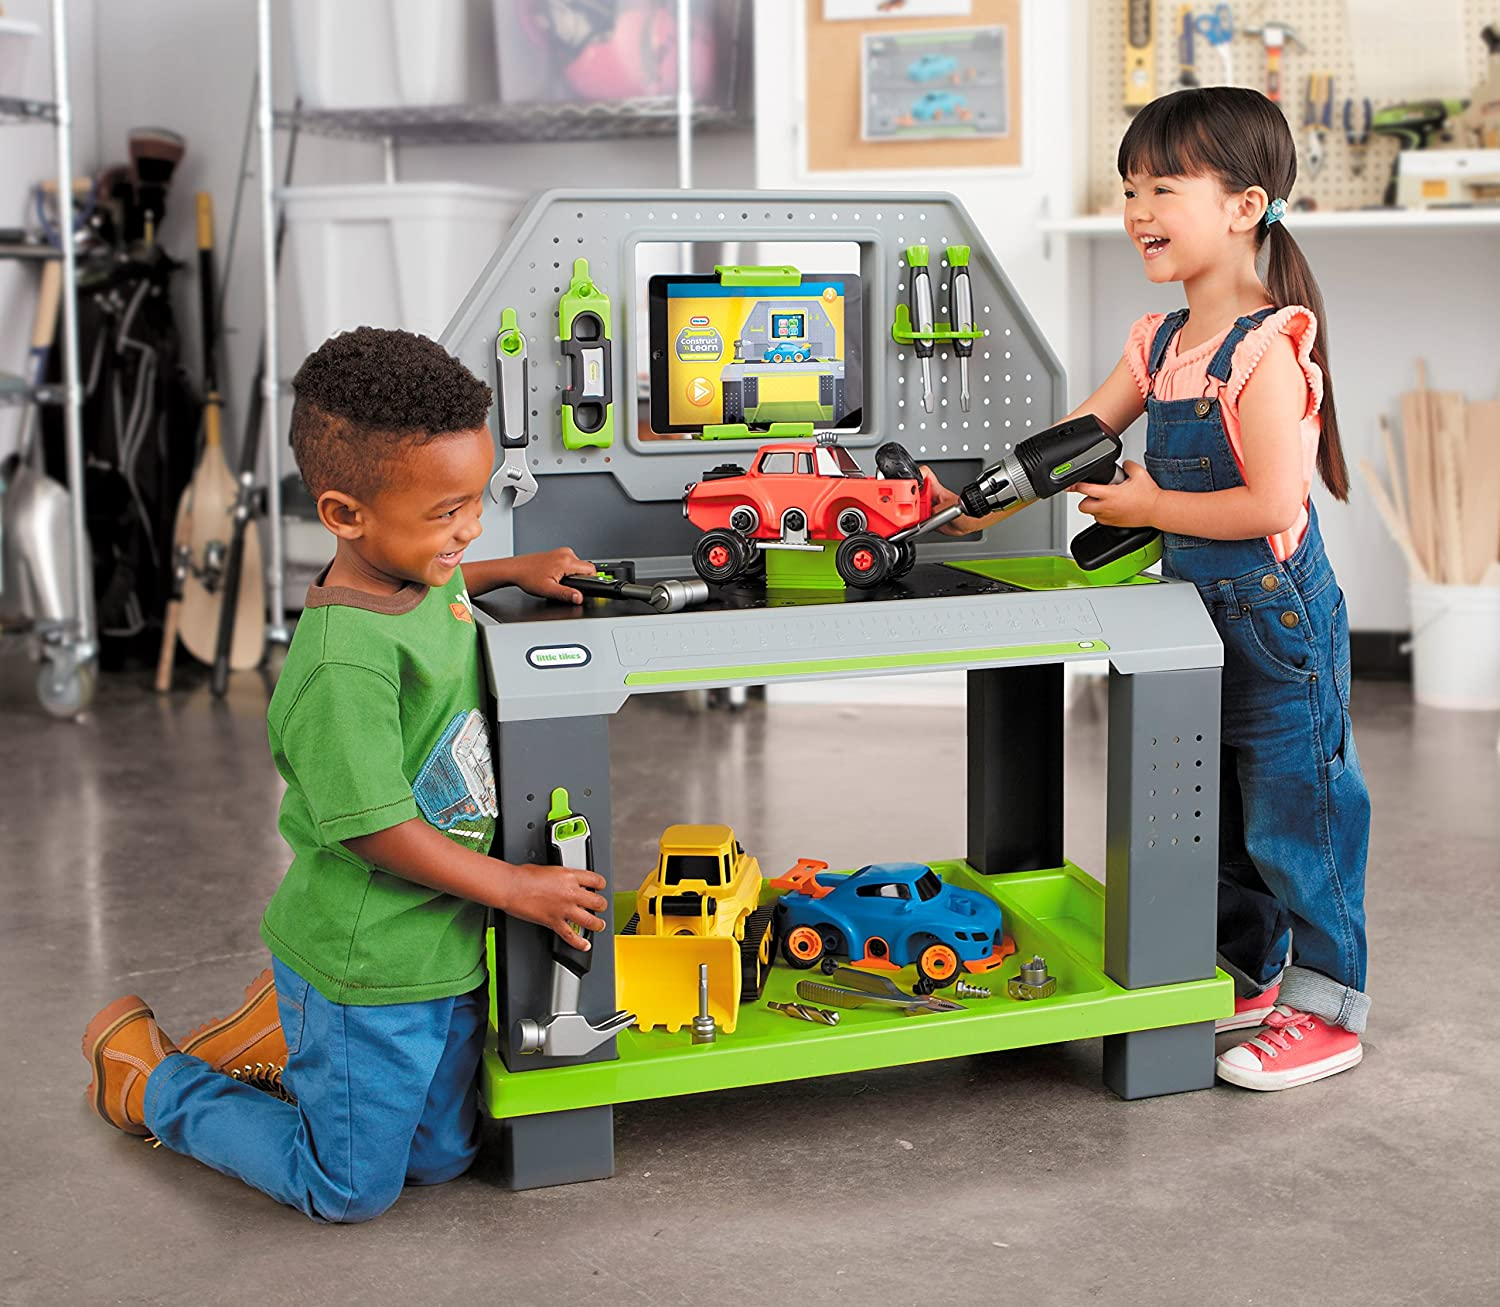 $71.16 (was $219.99) Little Tikes Construct 'N Learn Smart Workbench Construction Tools (643651C)